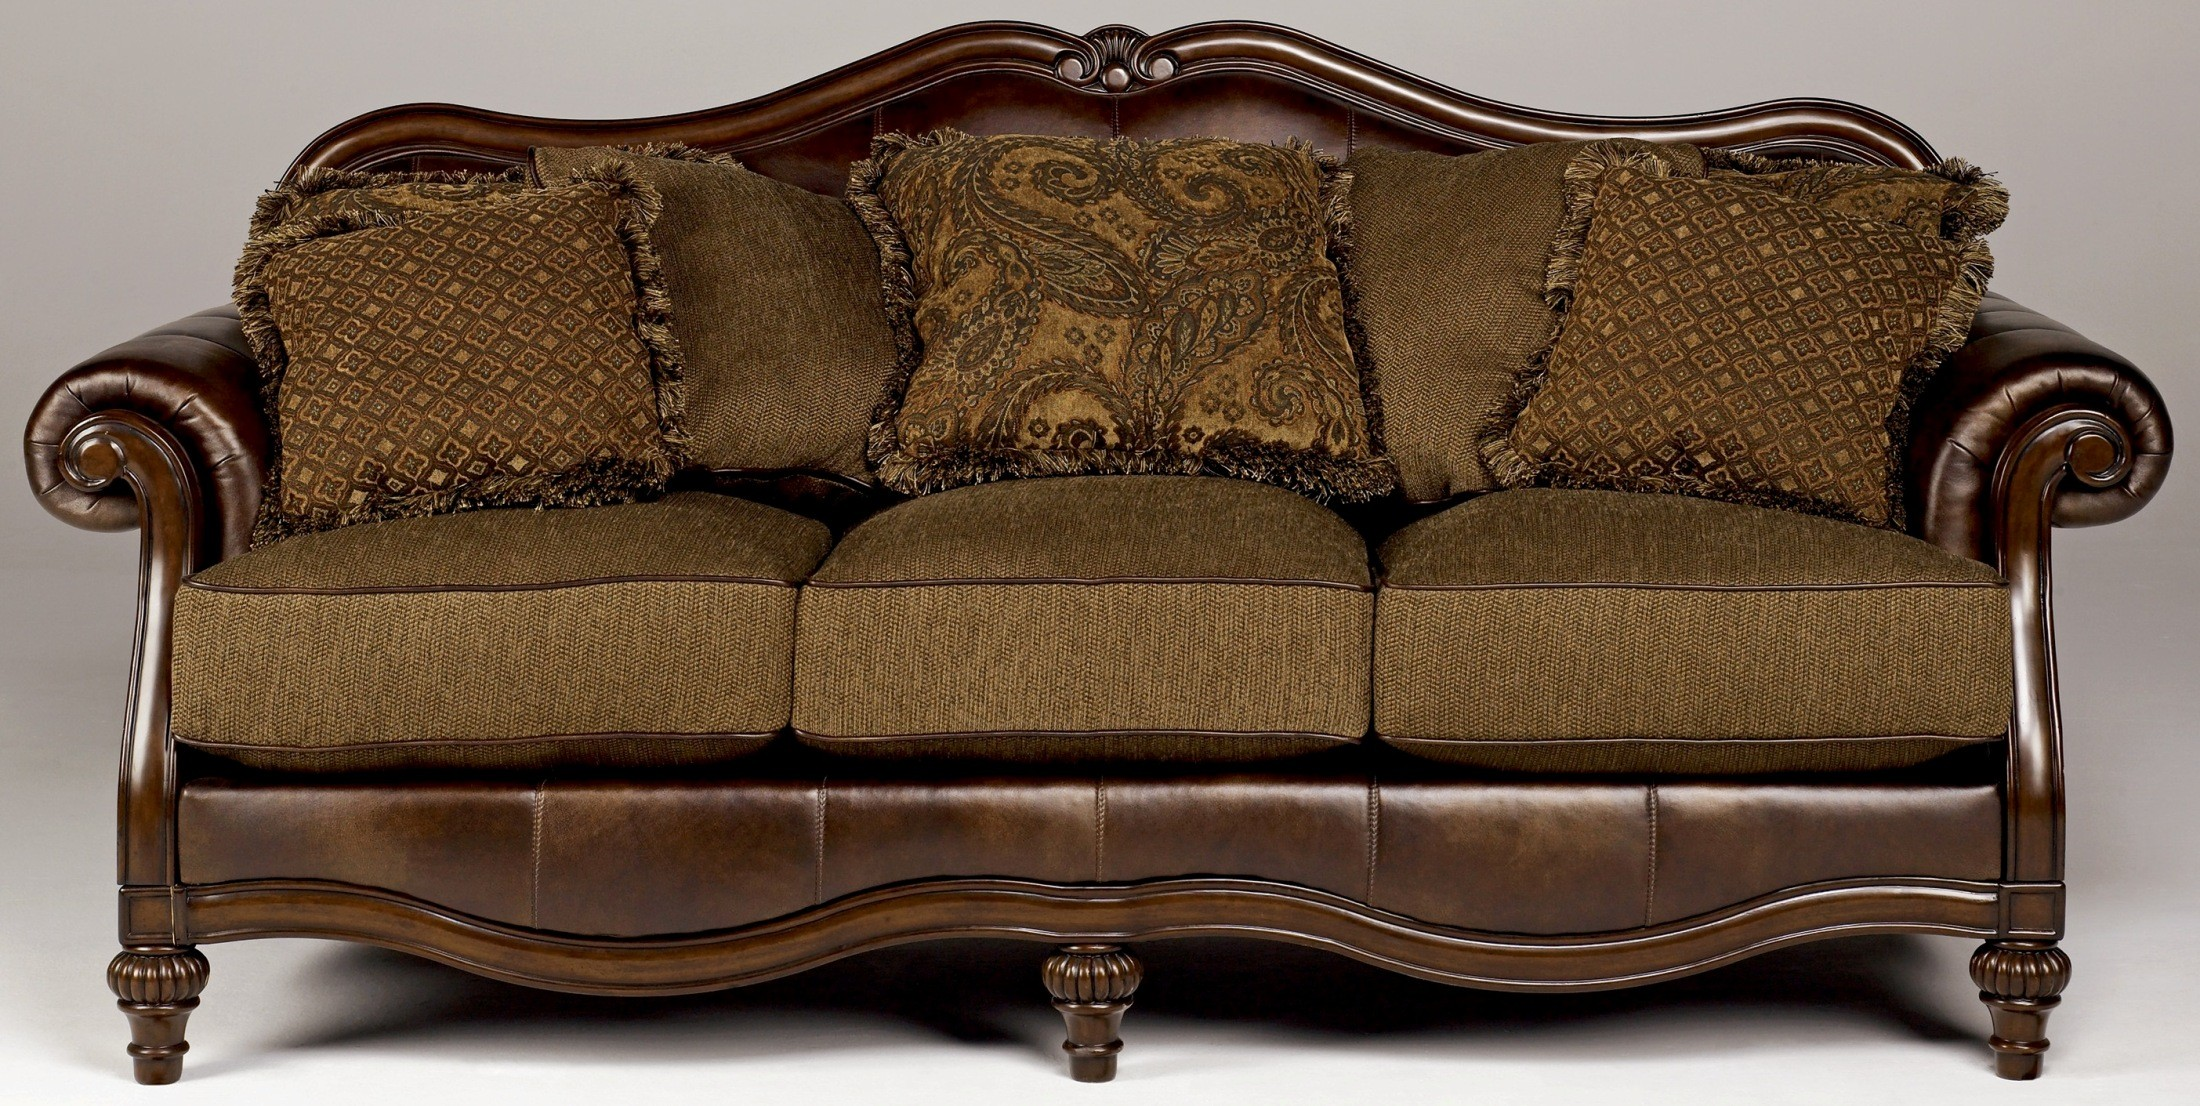 Claremore Antique Sofa From Ashley 8430338 Coleman